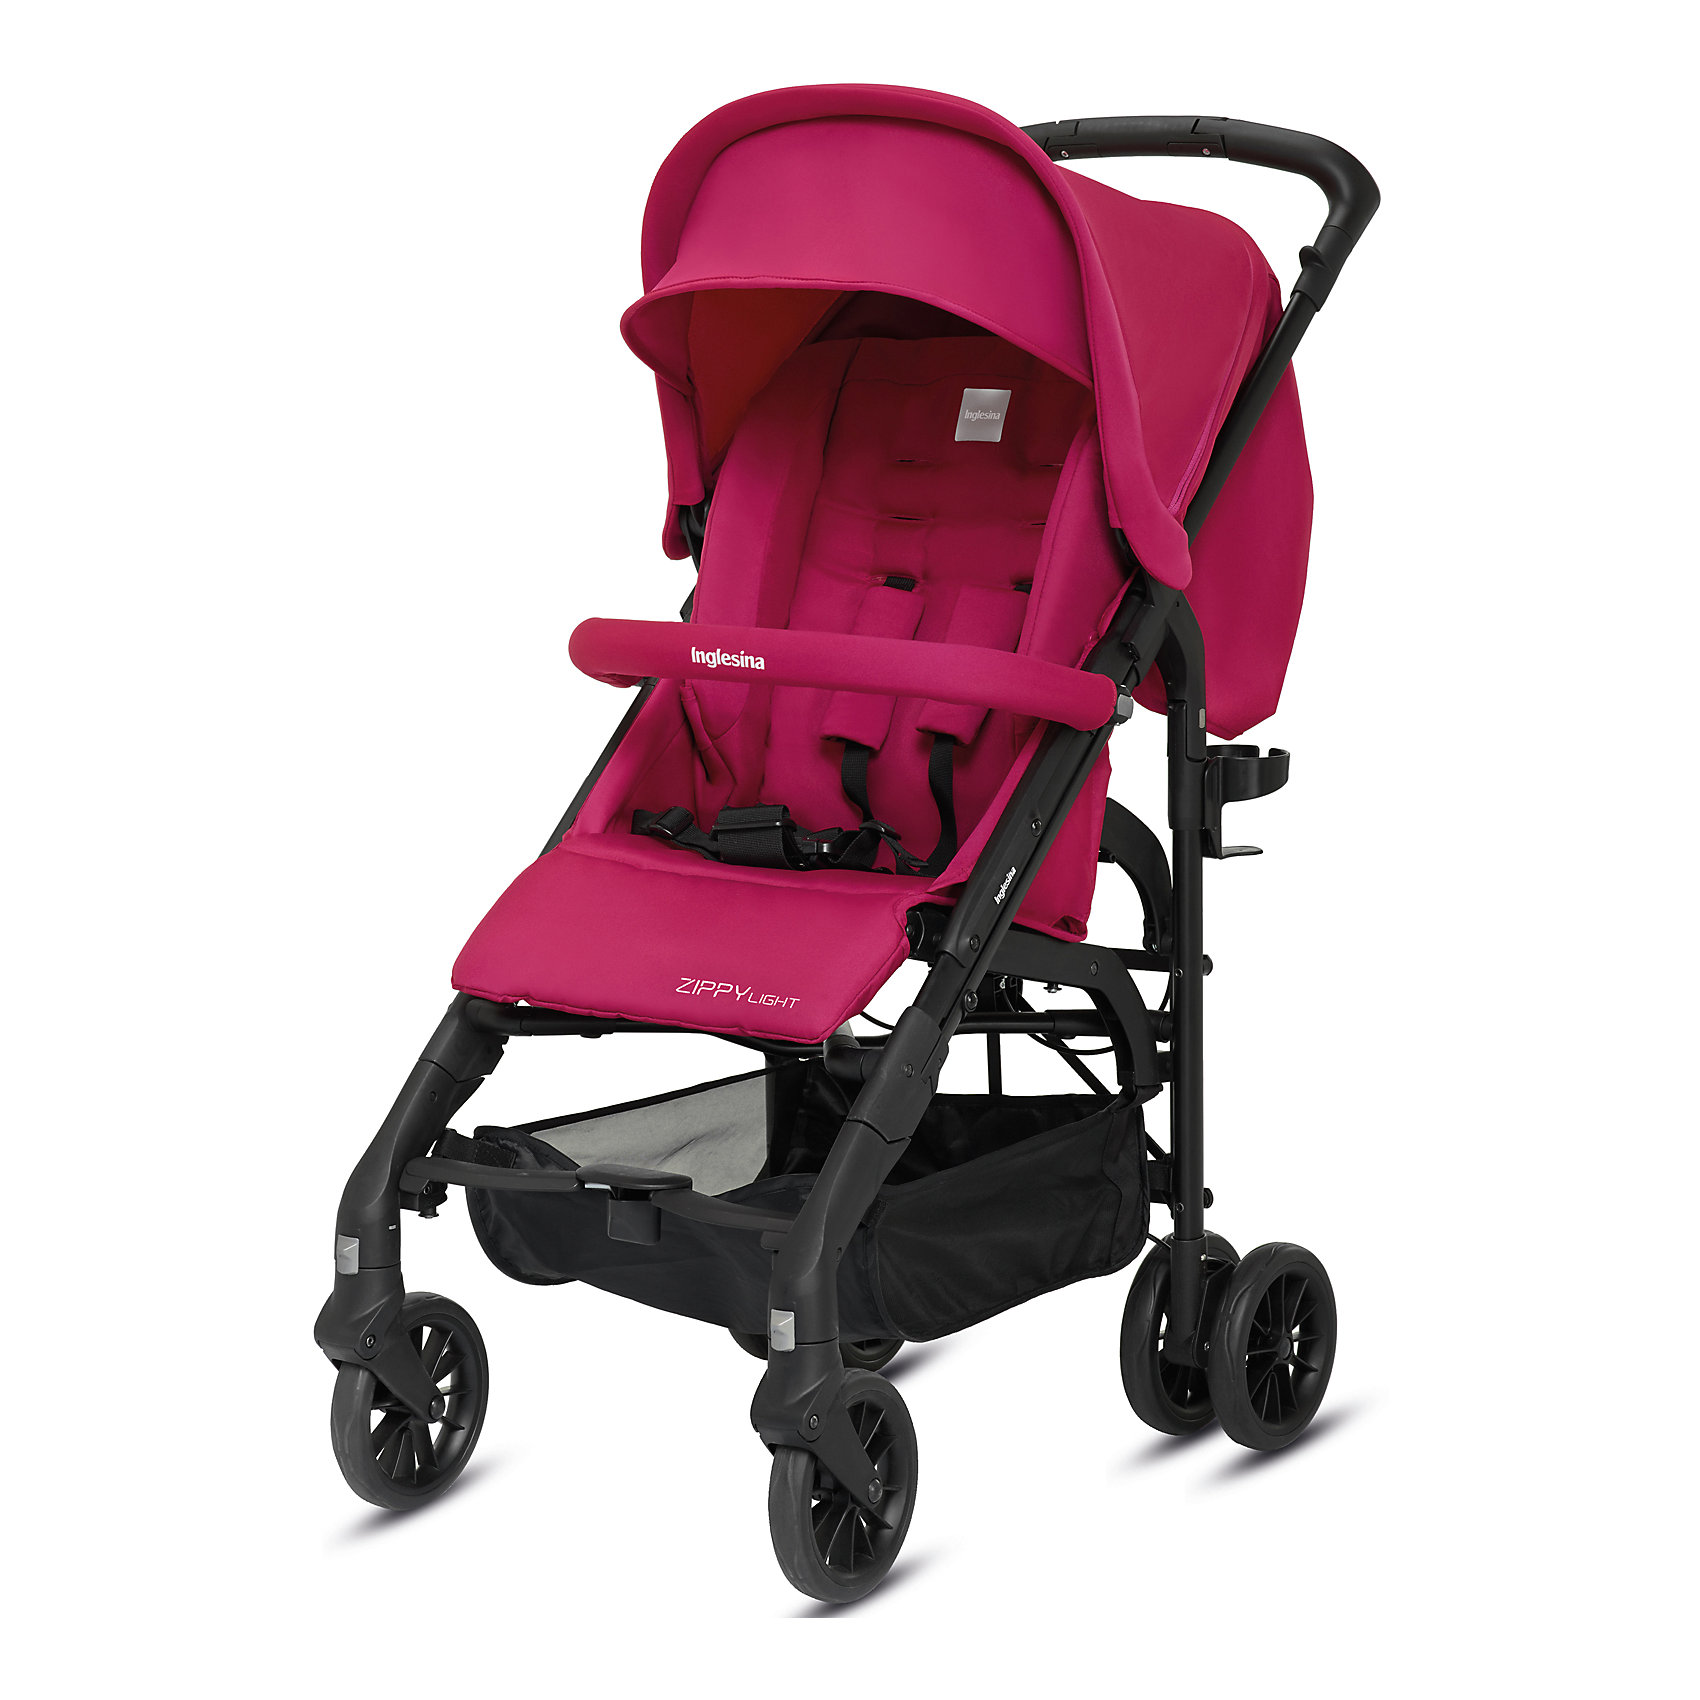 Inglesina Прогулочная коляска Zippy Light, Inglesina, Sweet Candy прогулочная коляска cool baby kdd 6699gb t fuchsia light grey